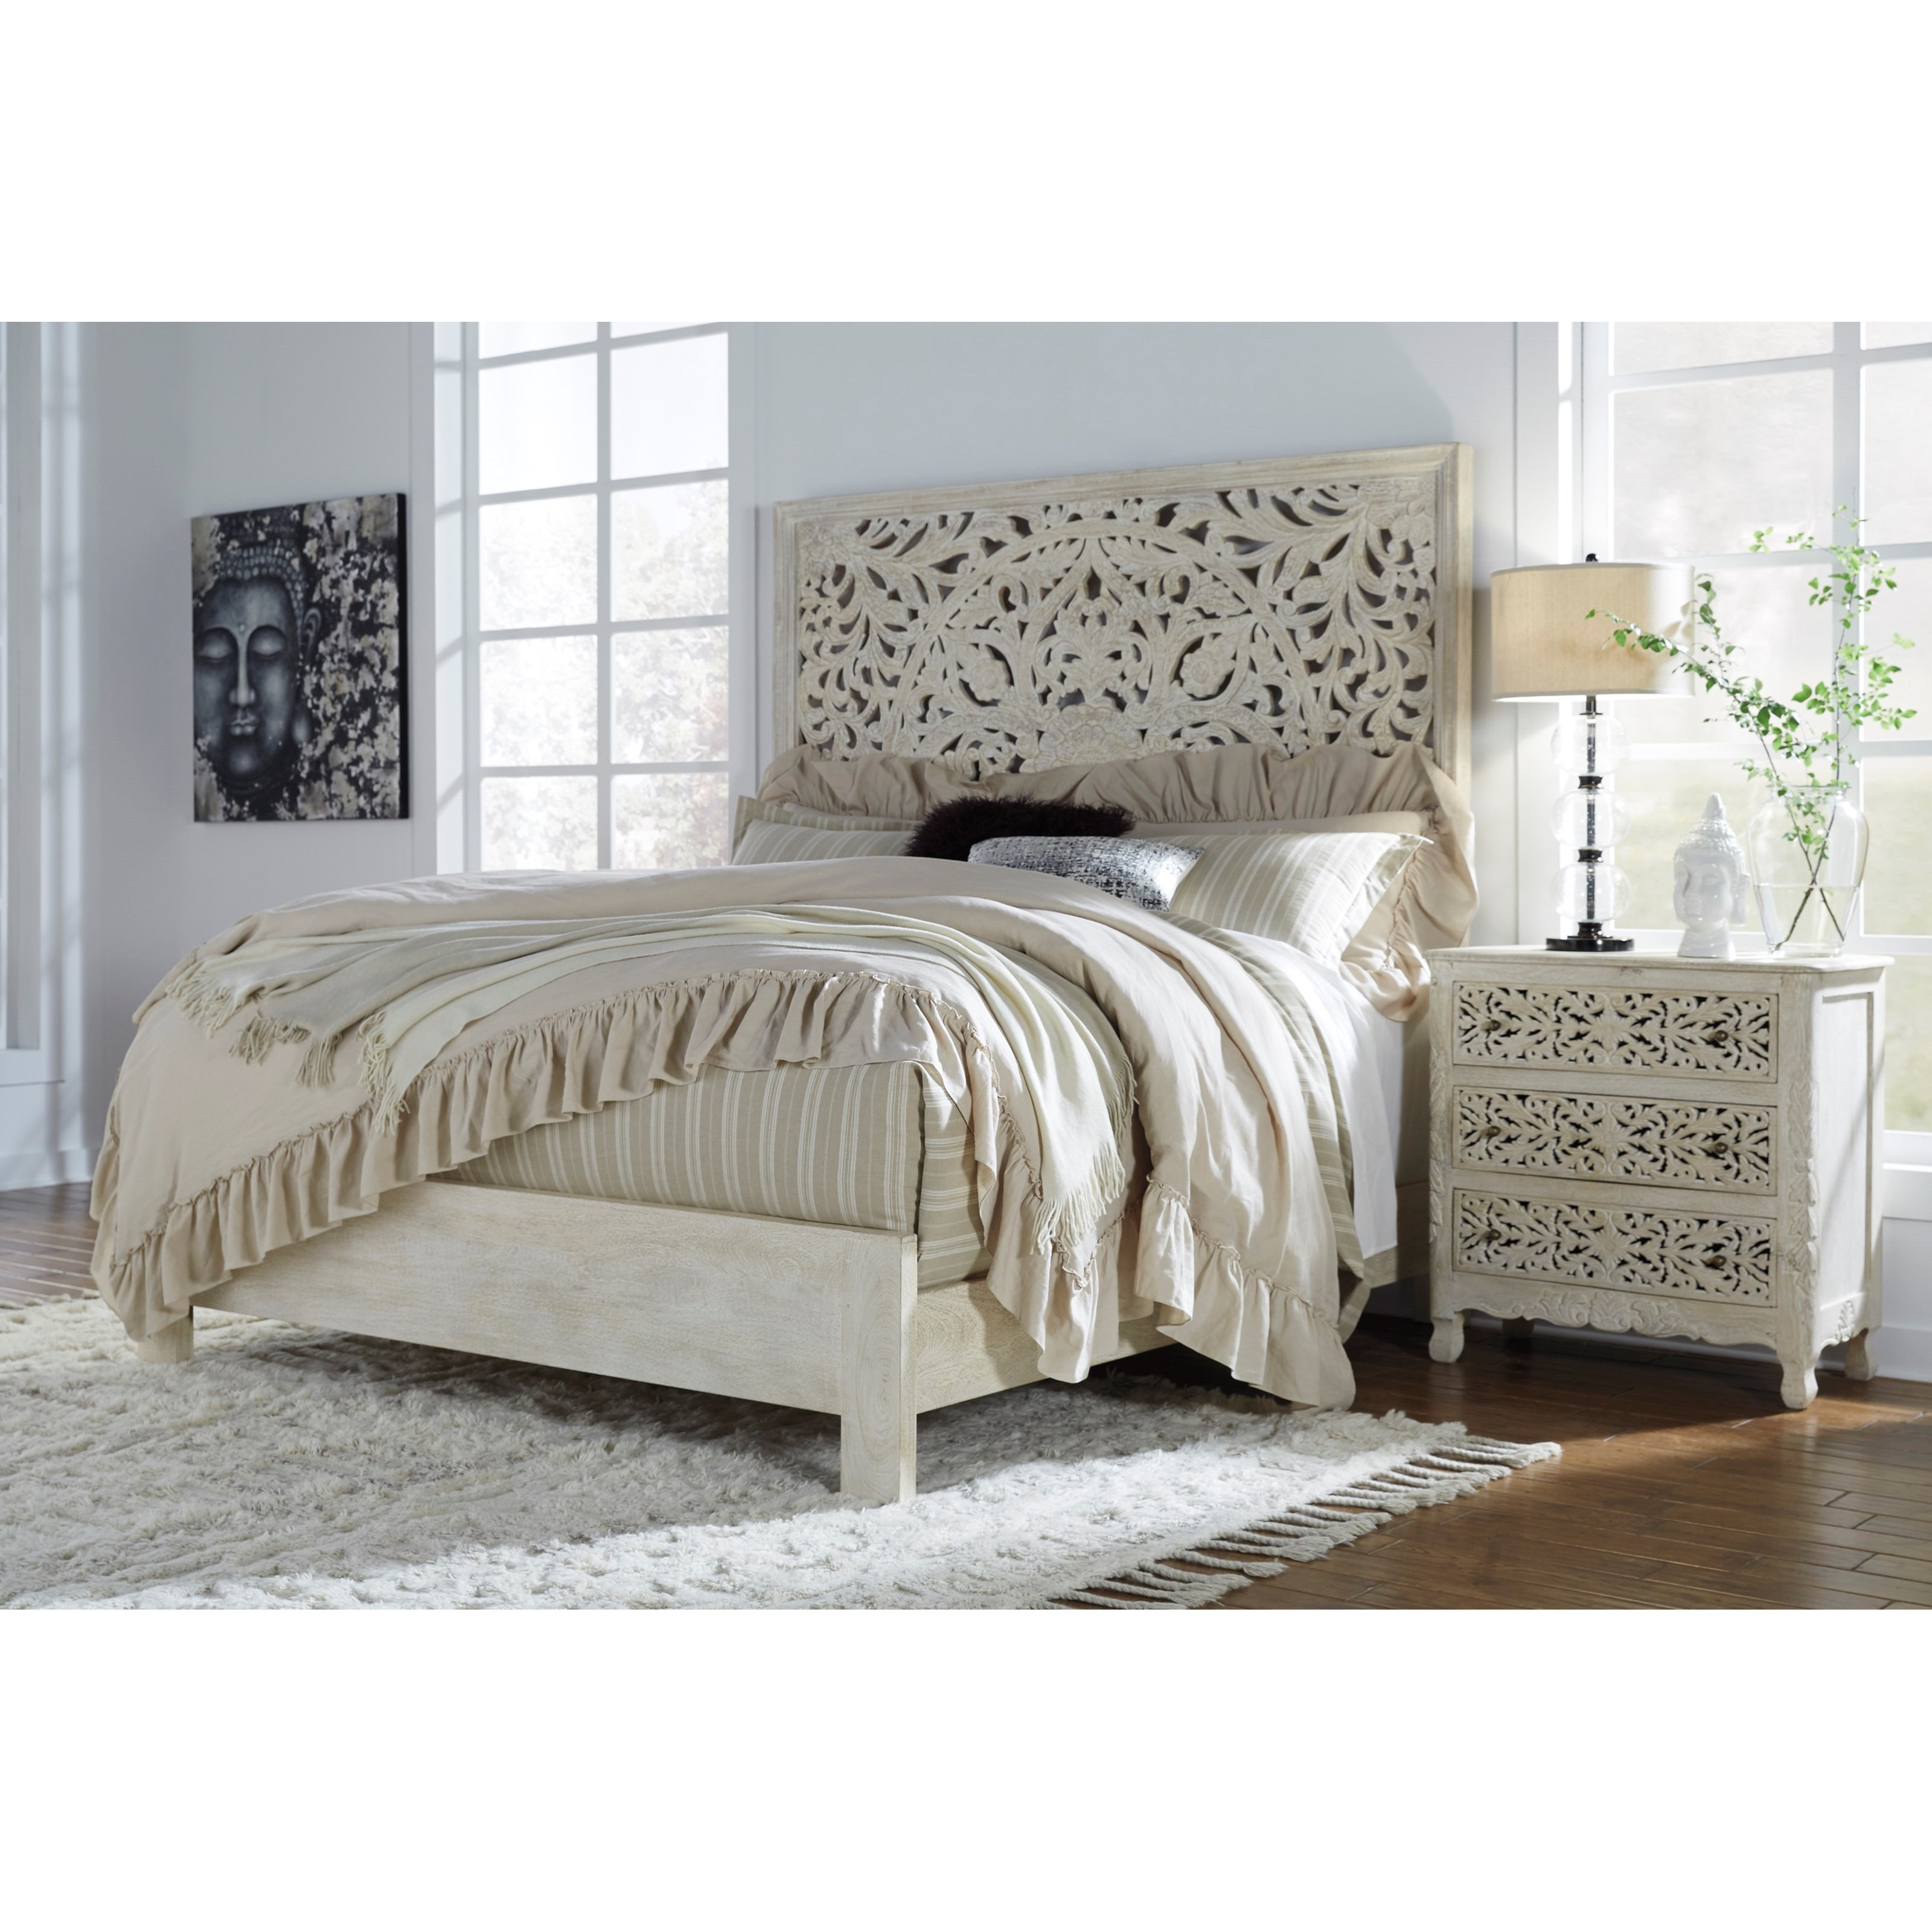 Signature Design by Ashley Bantori Queen Bedroom Group - Item Number: B805 Q Bedroom Group 1